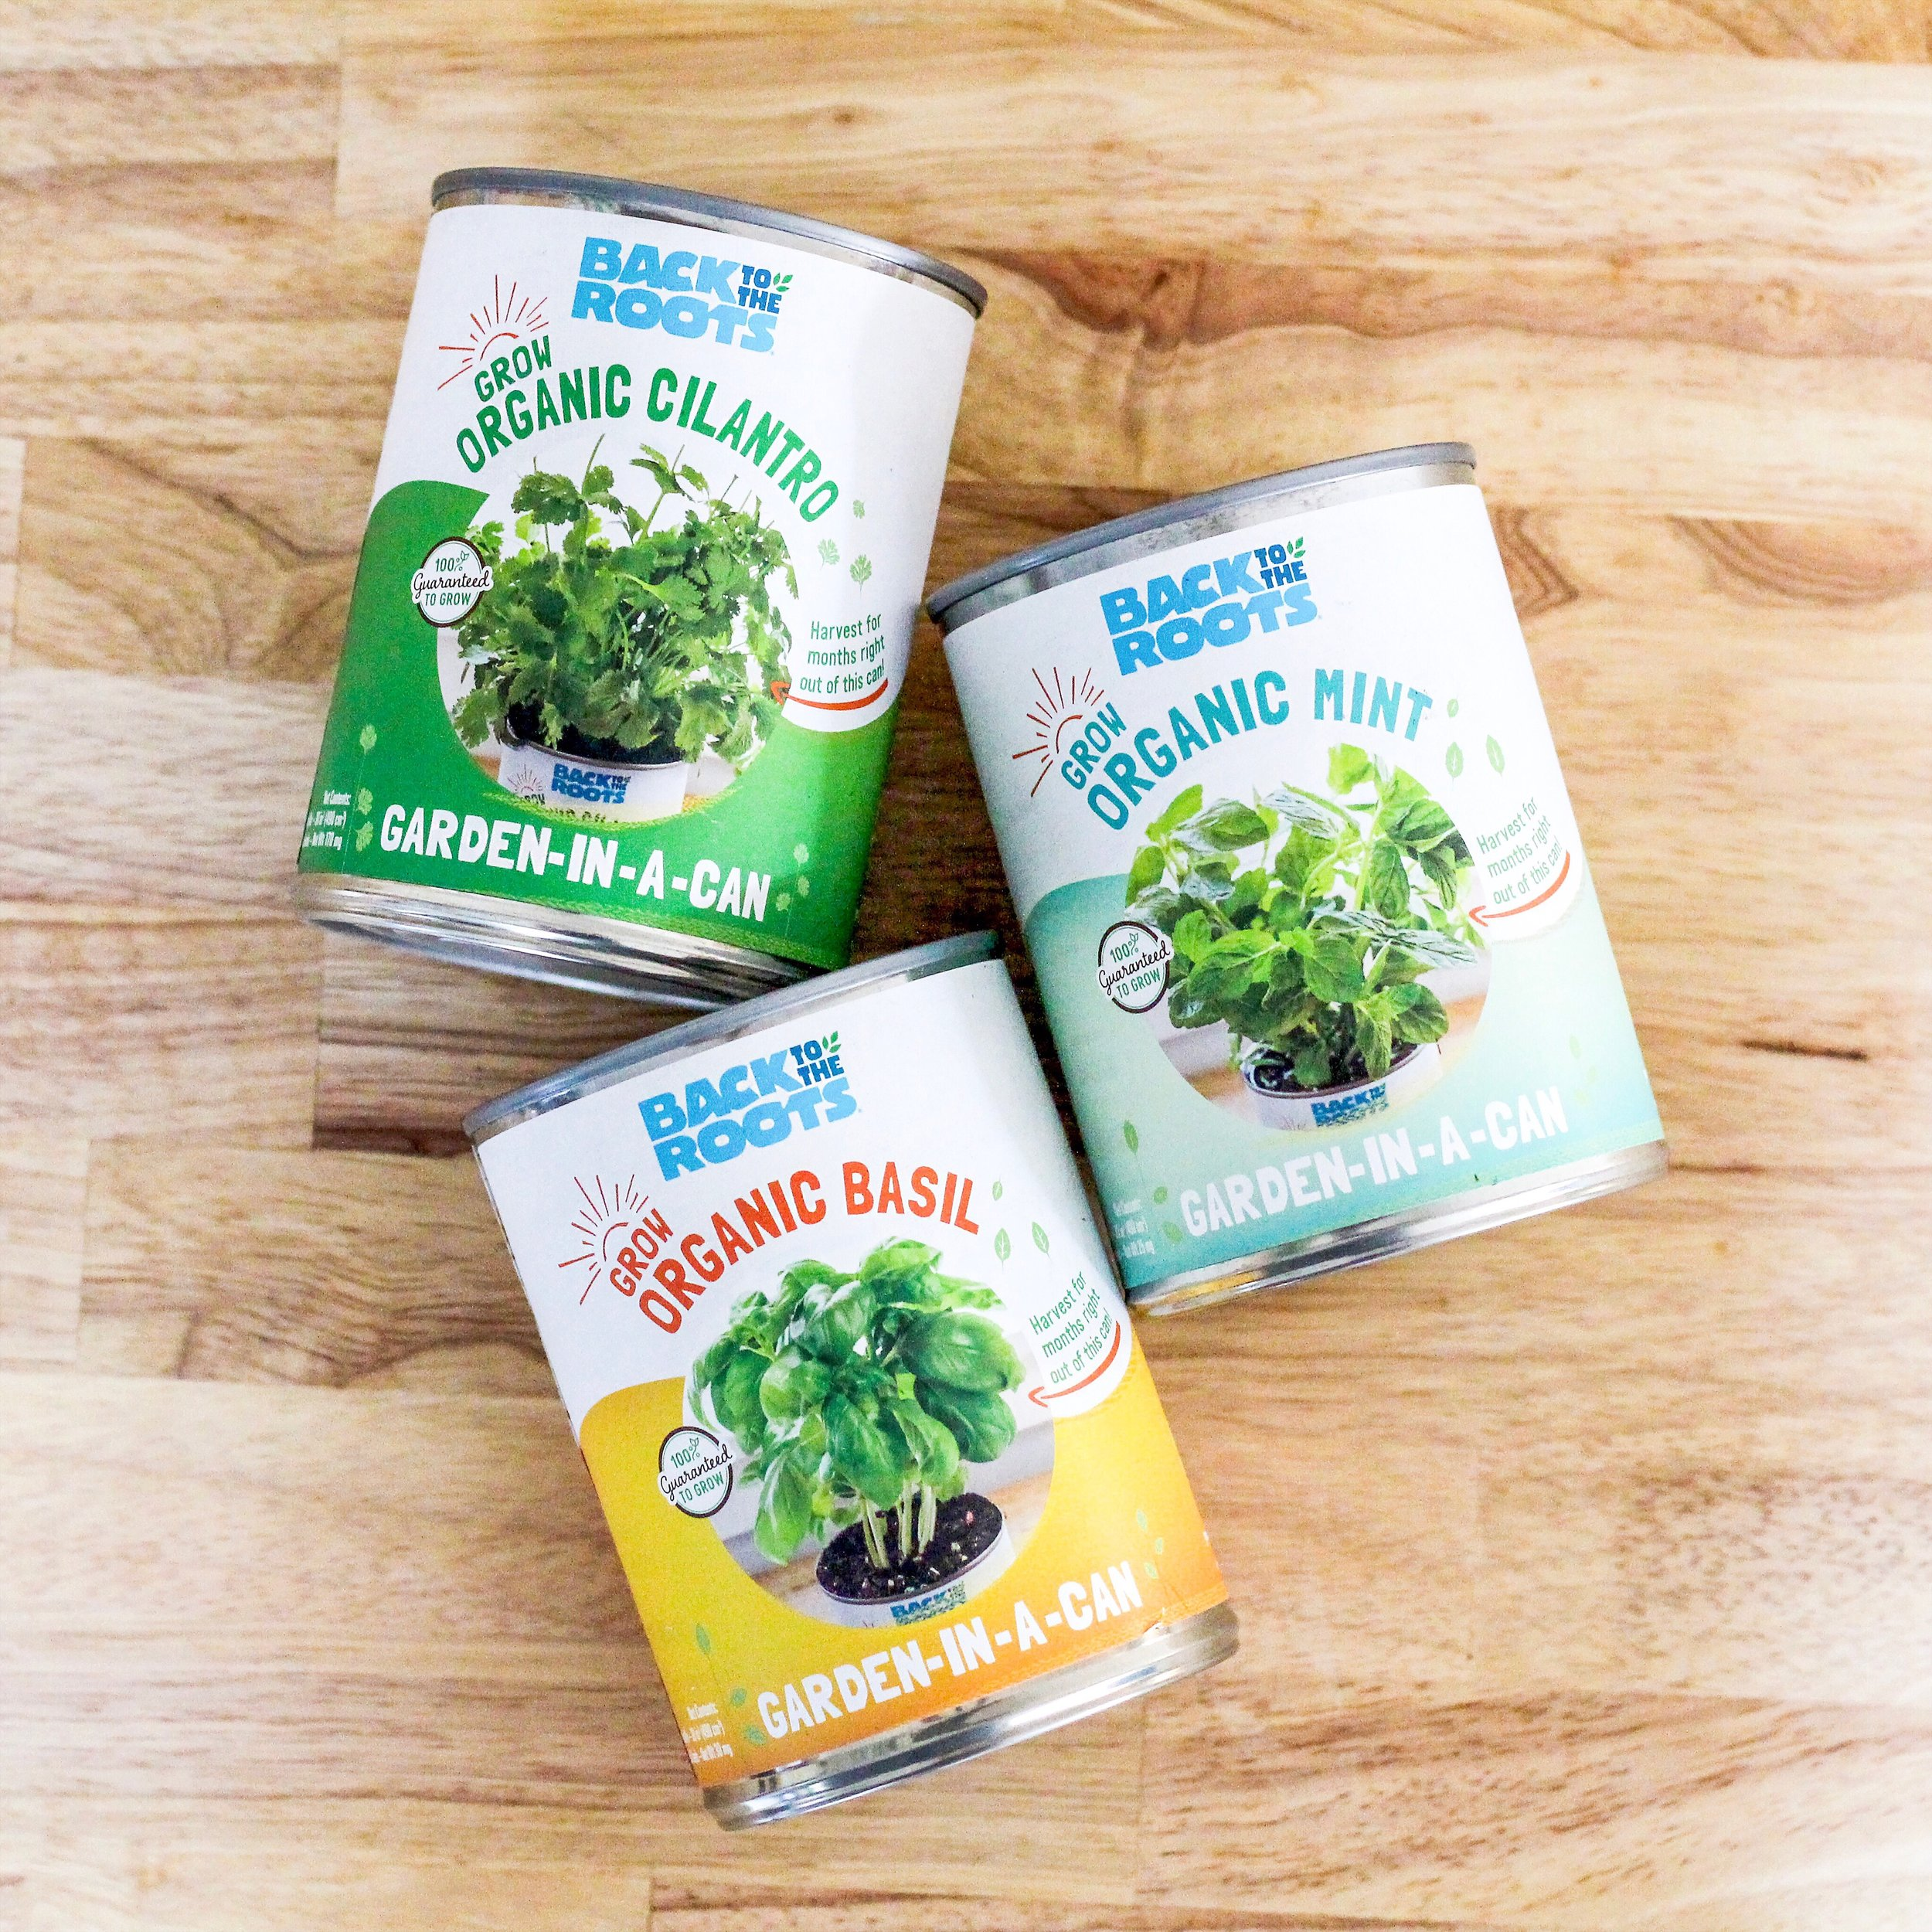 Back to the Roots : Garden-in-a-can